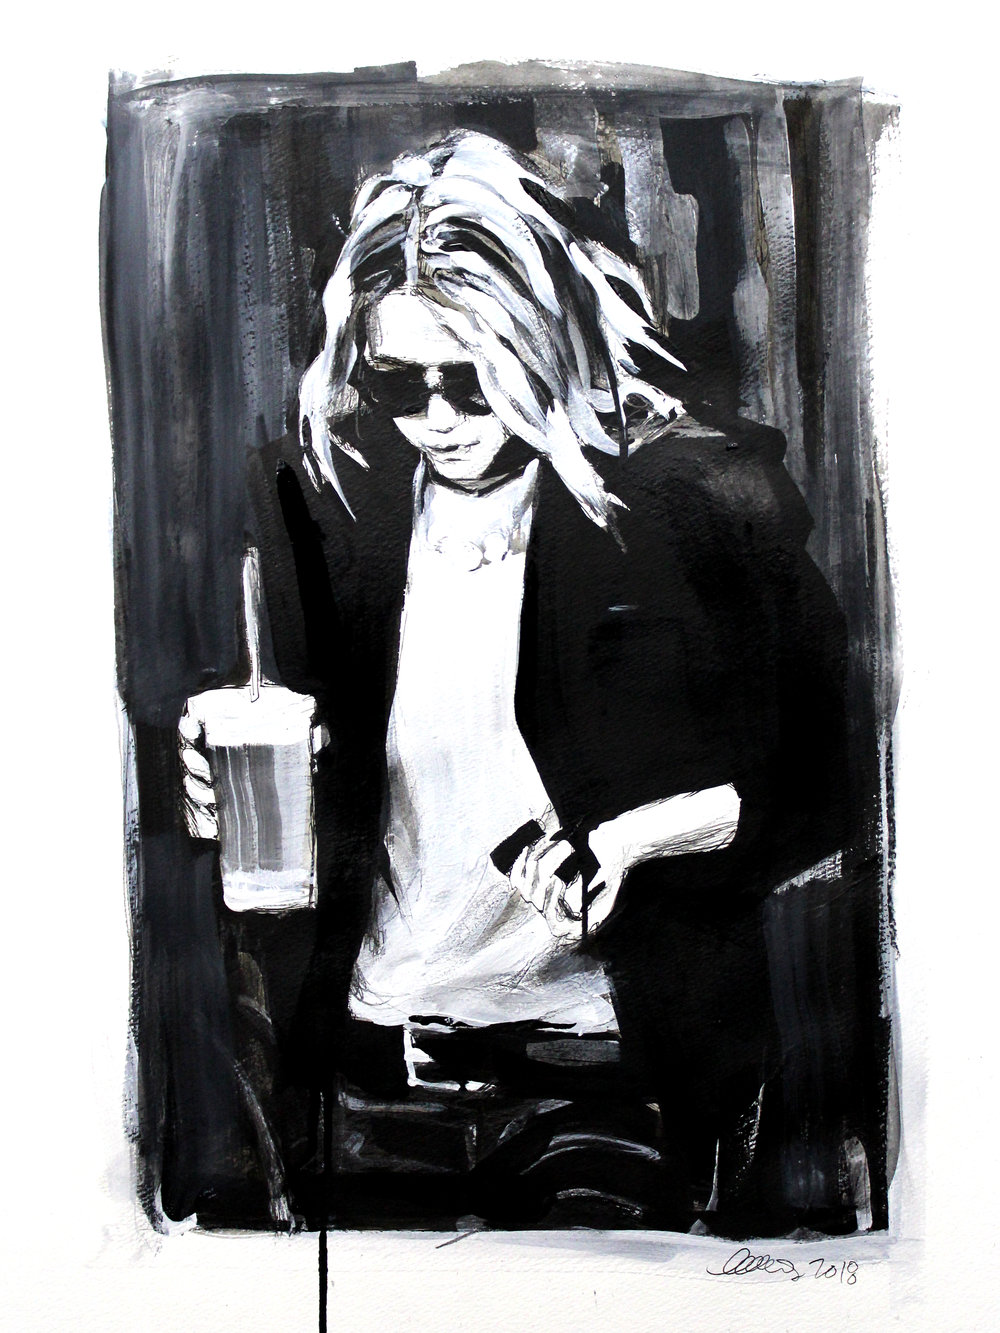 Laura Collins An Olsen Twin With Coffee no.12 18x24 Mixed Media on Paper 2018.png